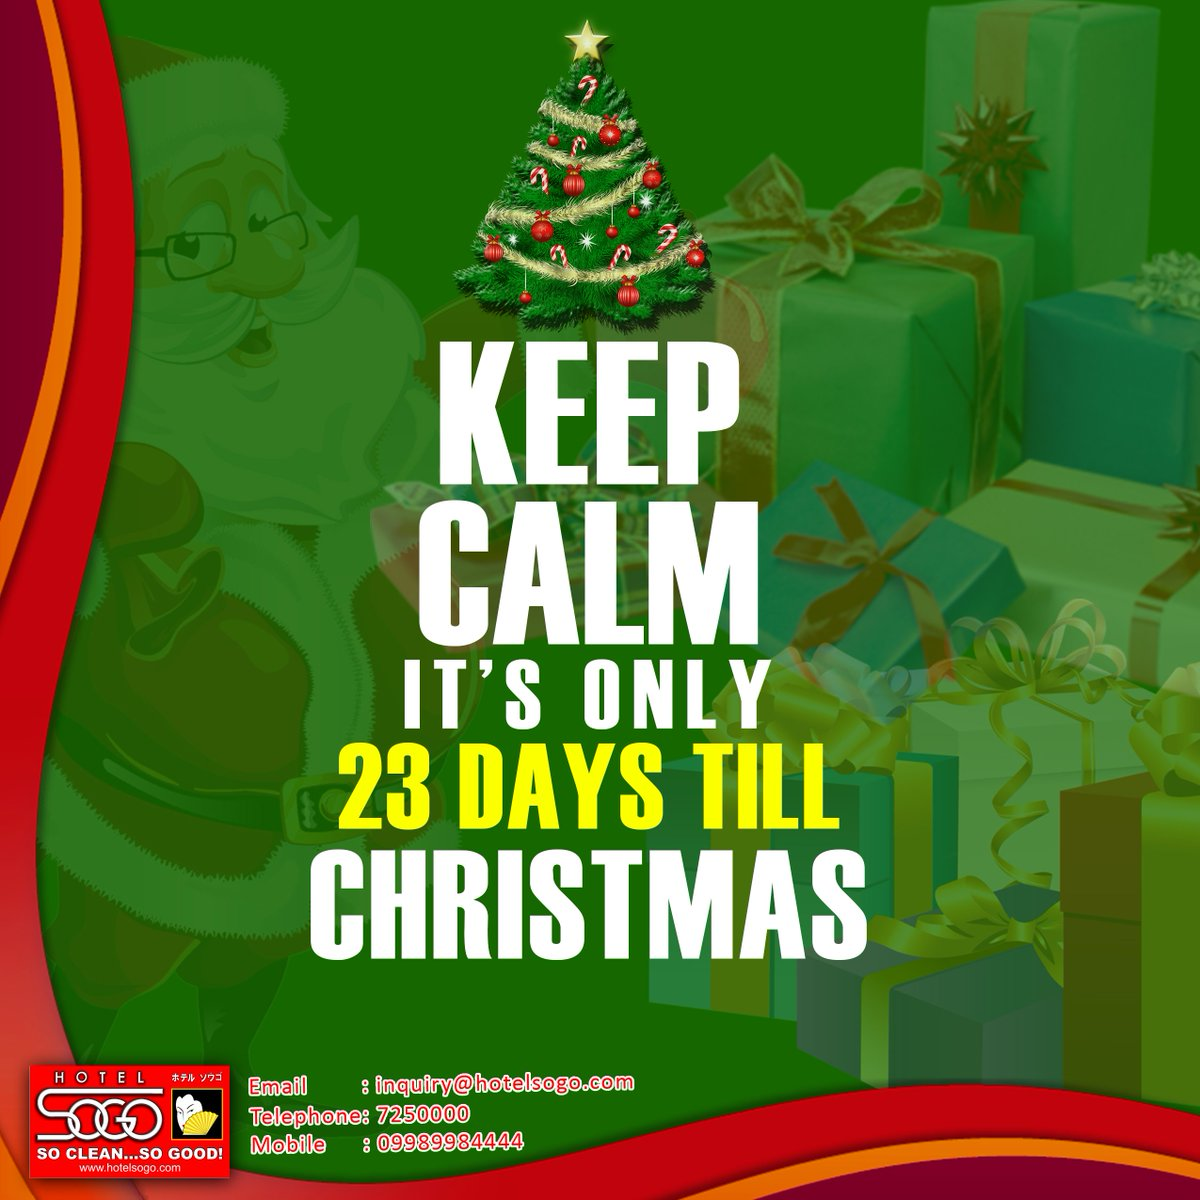 hotel sogo official on twitter how many days until christmas 2016 make hotel sogo your home this christmas season we are open to accommodate you 247 - How Many Days Till Christmas Eve